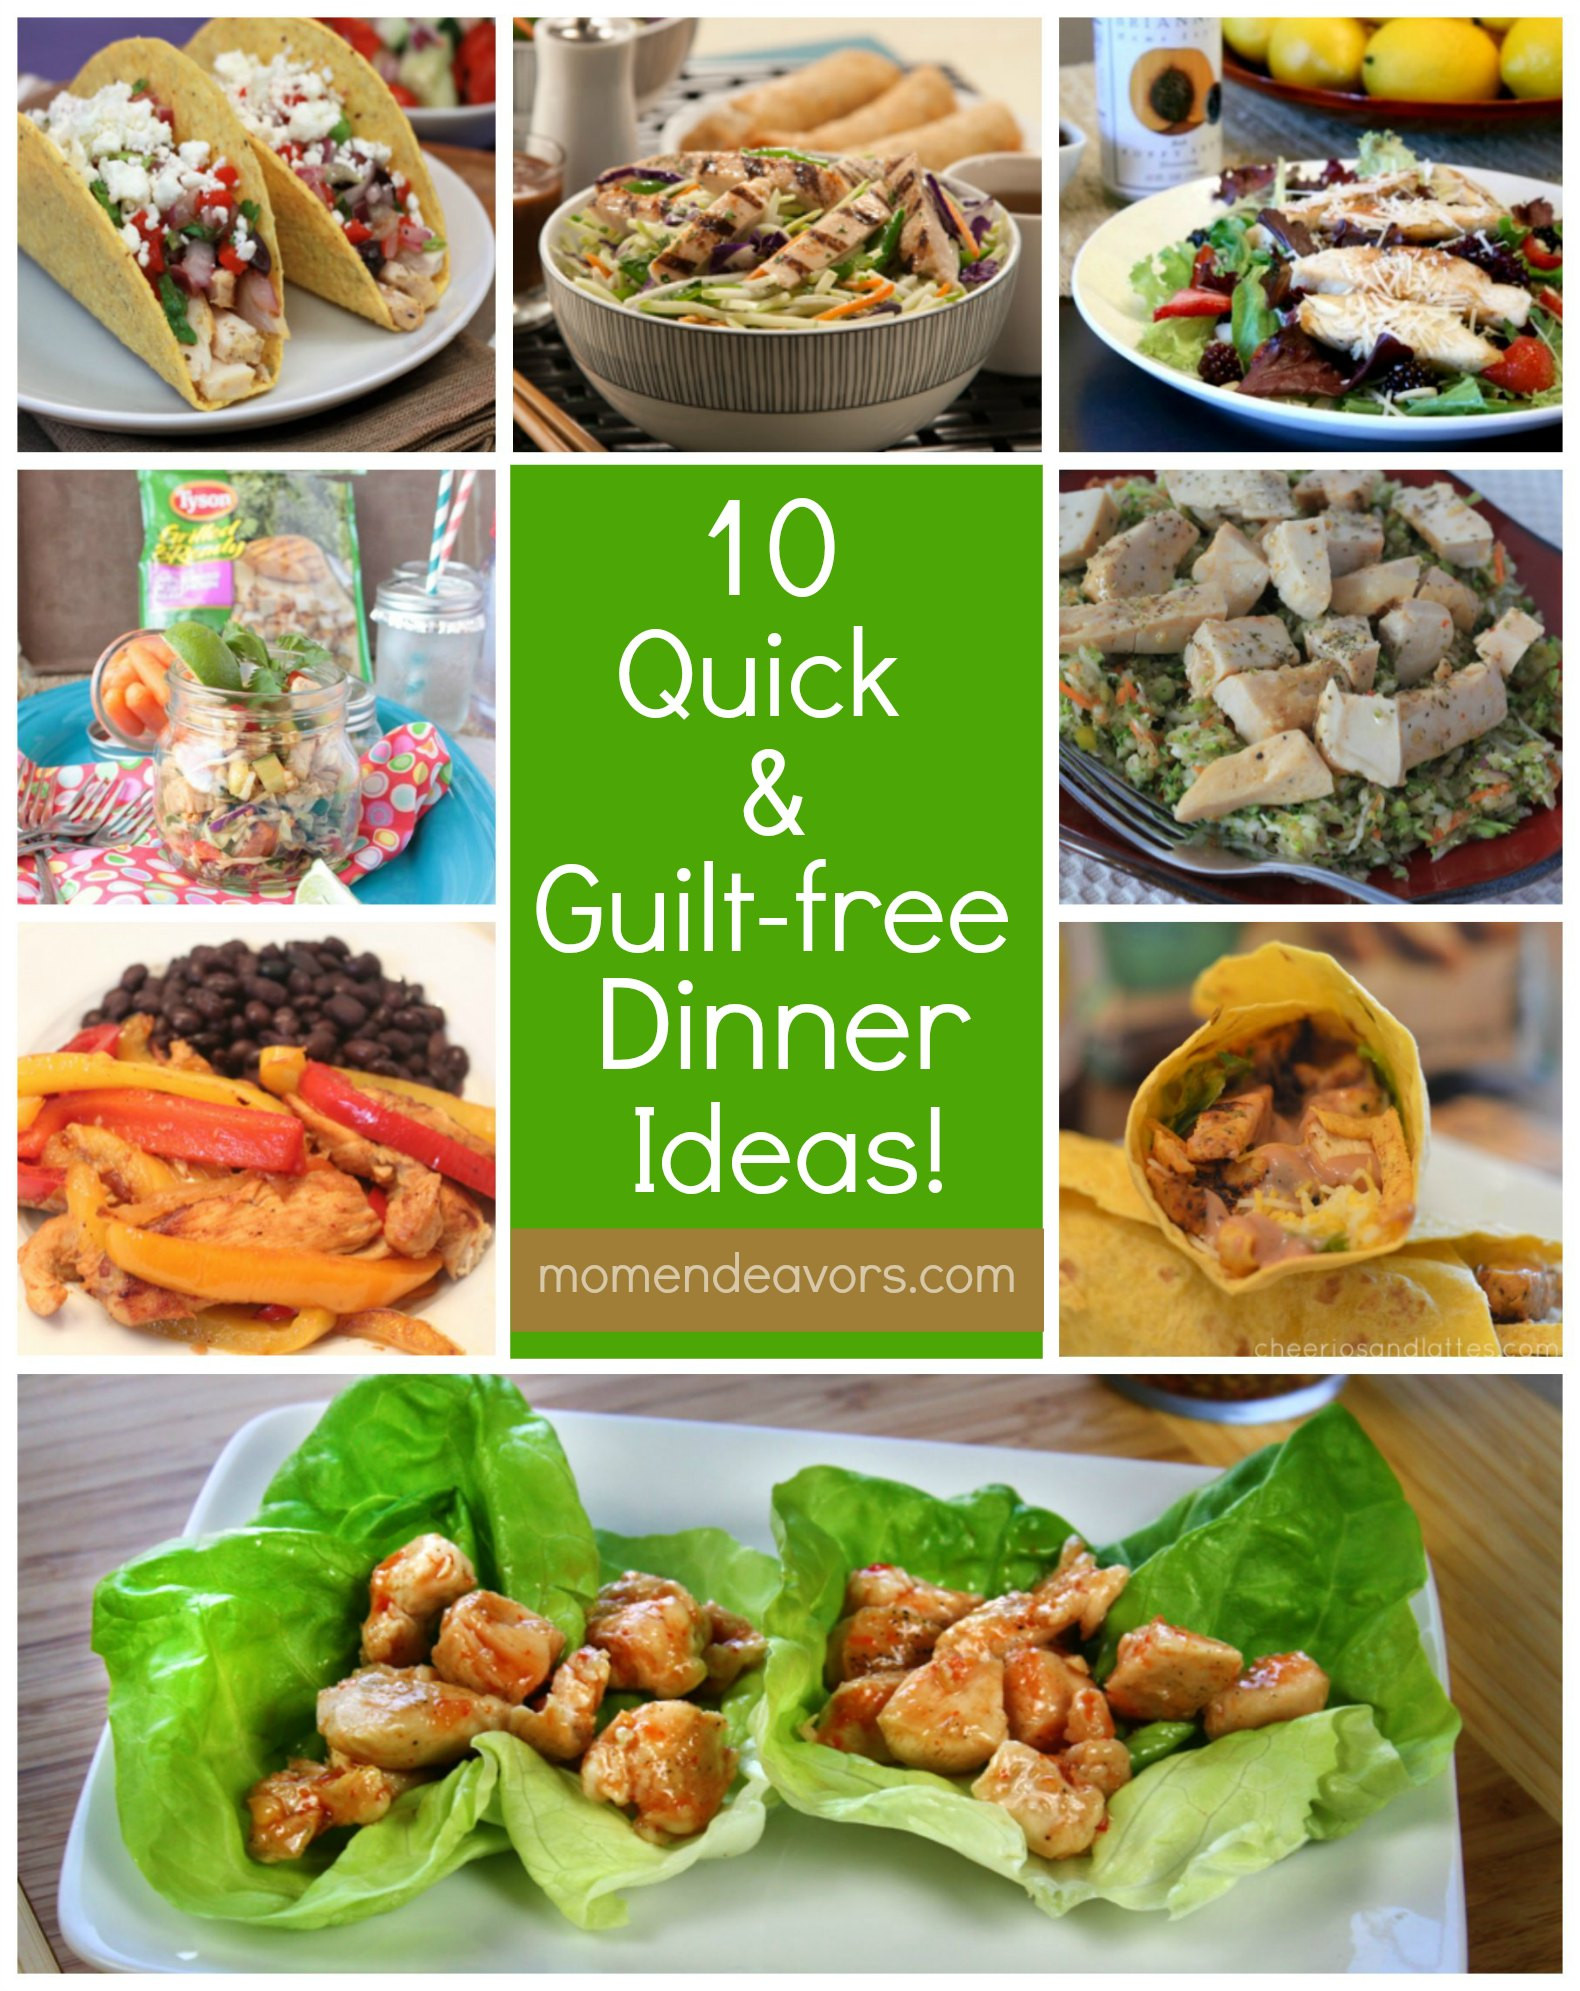 Easy Healthy Recipes For Dinner  Ad Sweet 'n Spicy Chicken Lettuce Cups JustAddThis